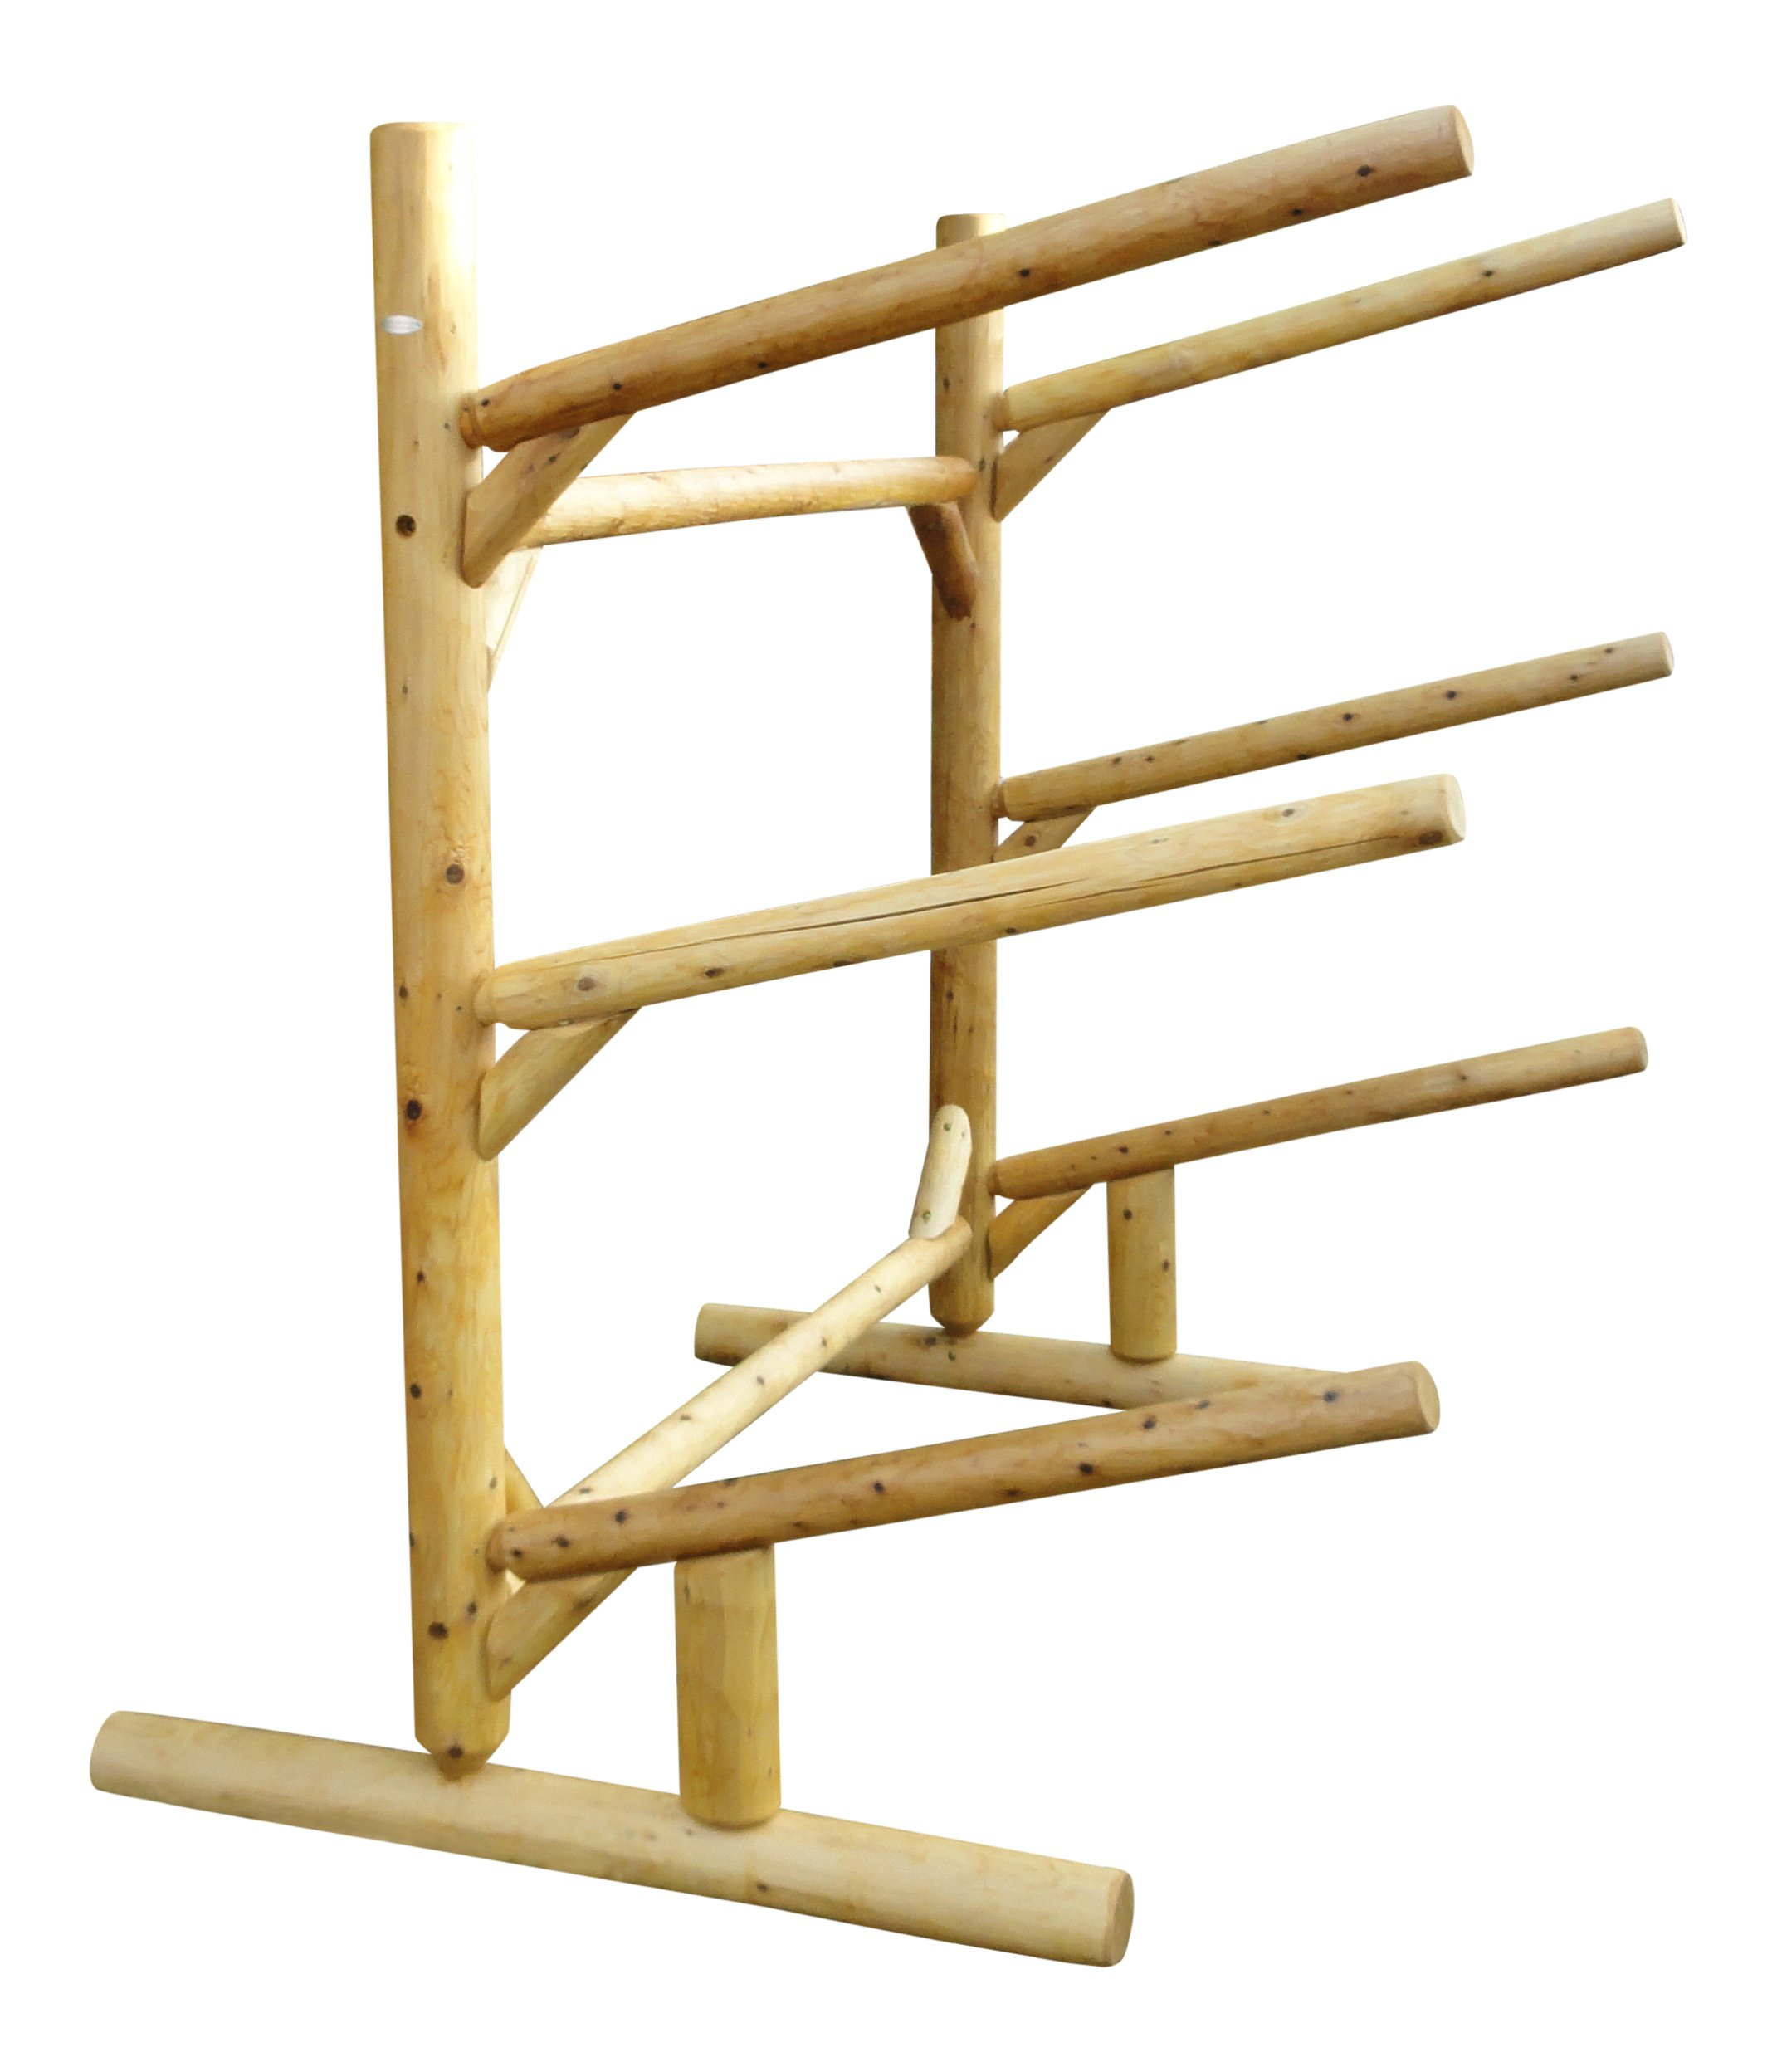 3 Place One Sided Kayak and Canoe Rack Natural Finish by Log Kayak Rack